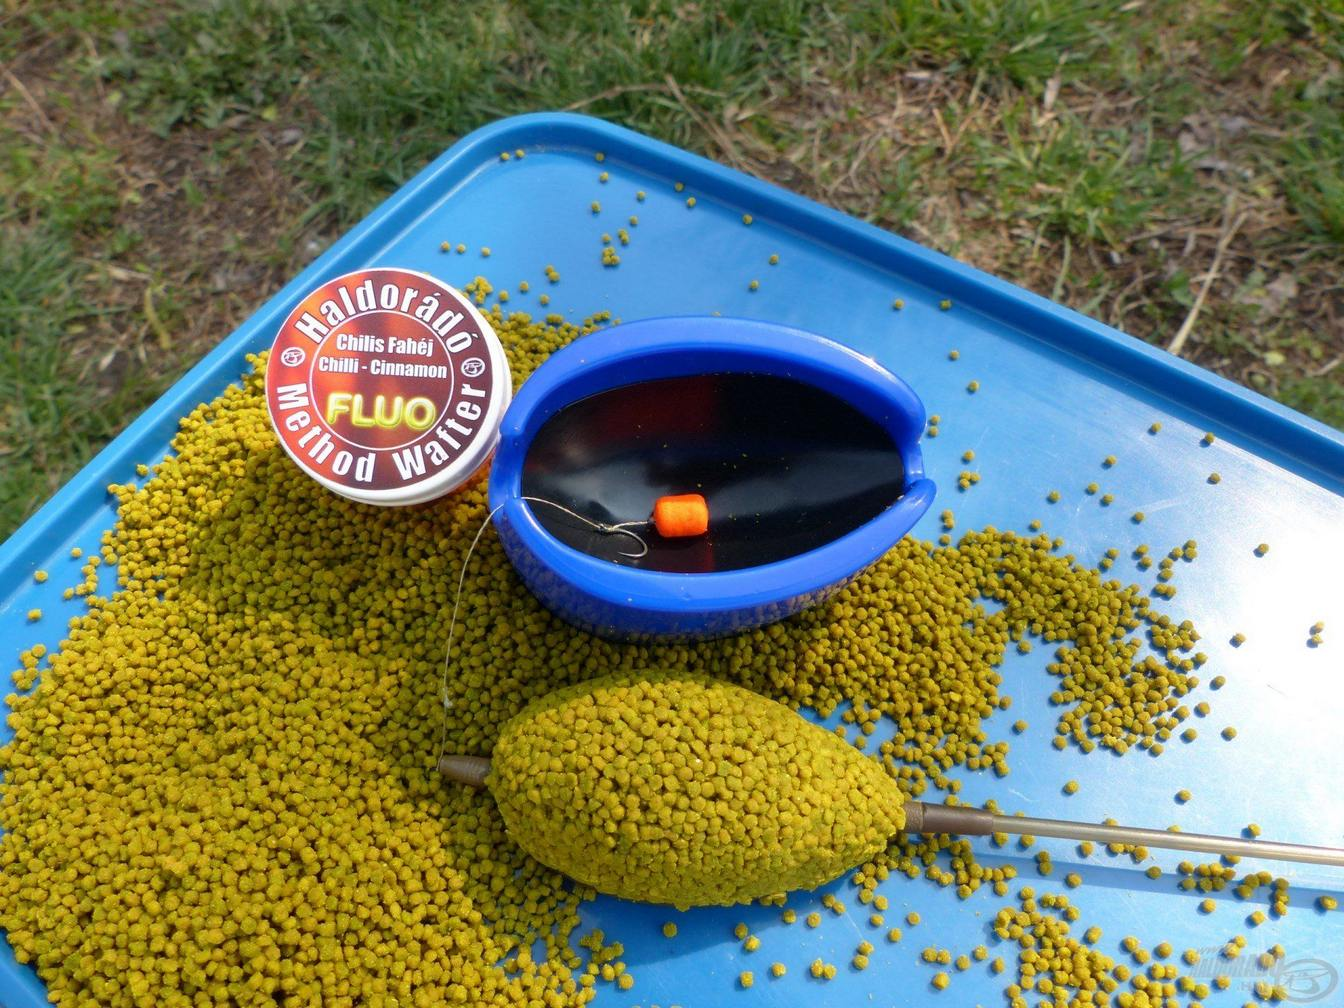 fluo method feeder